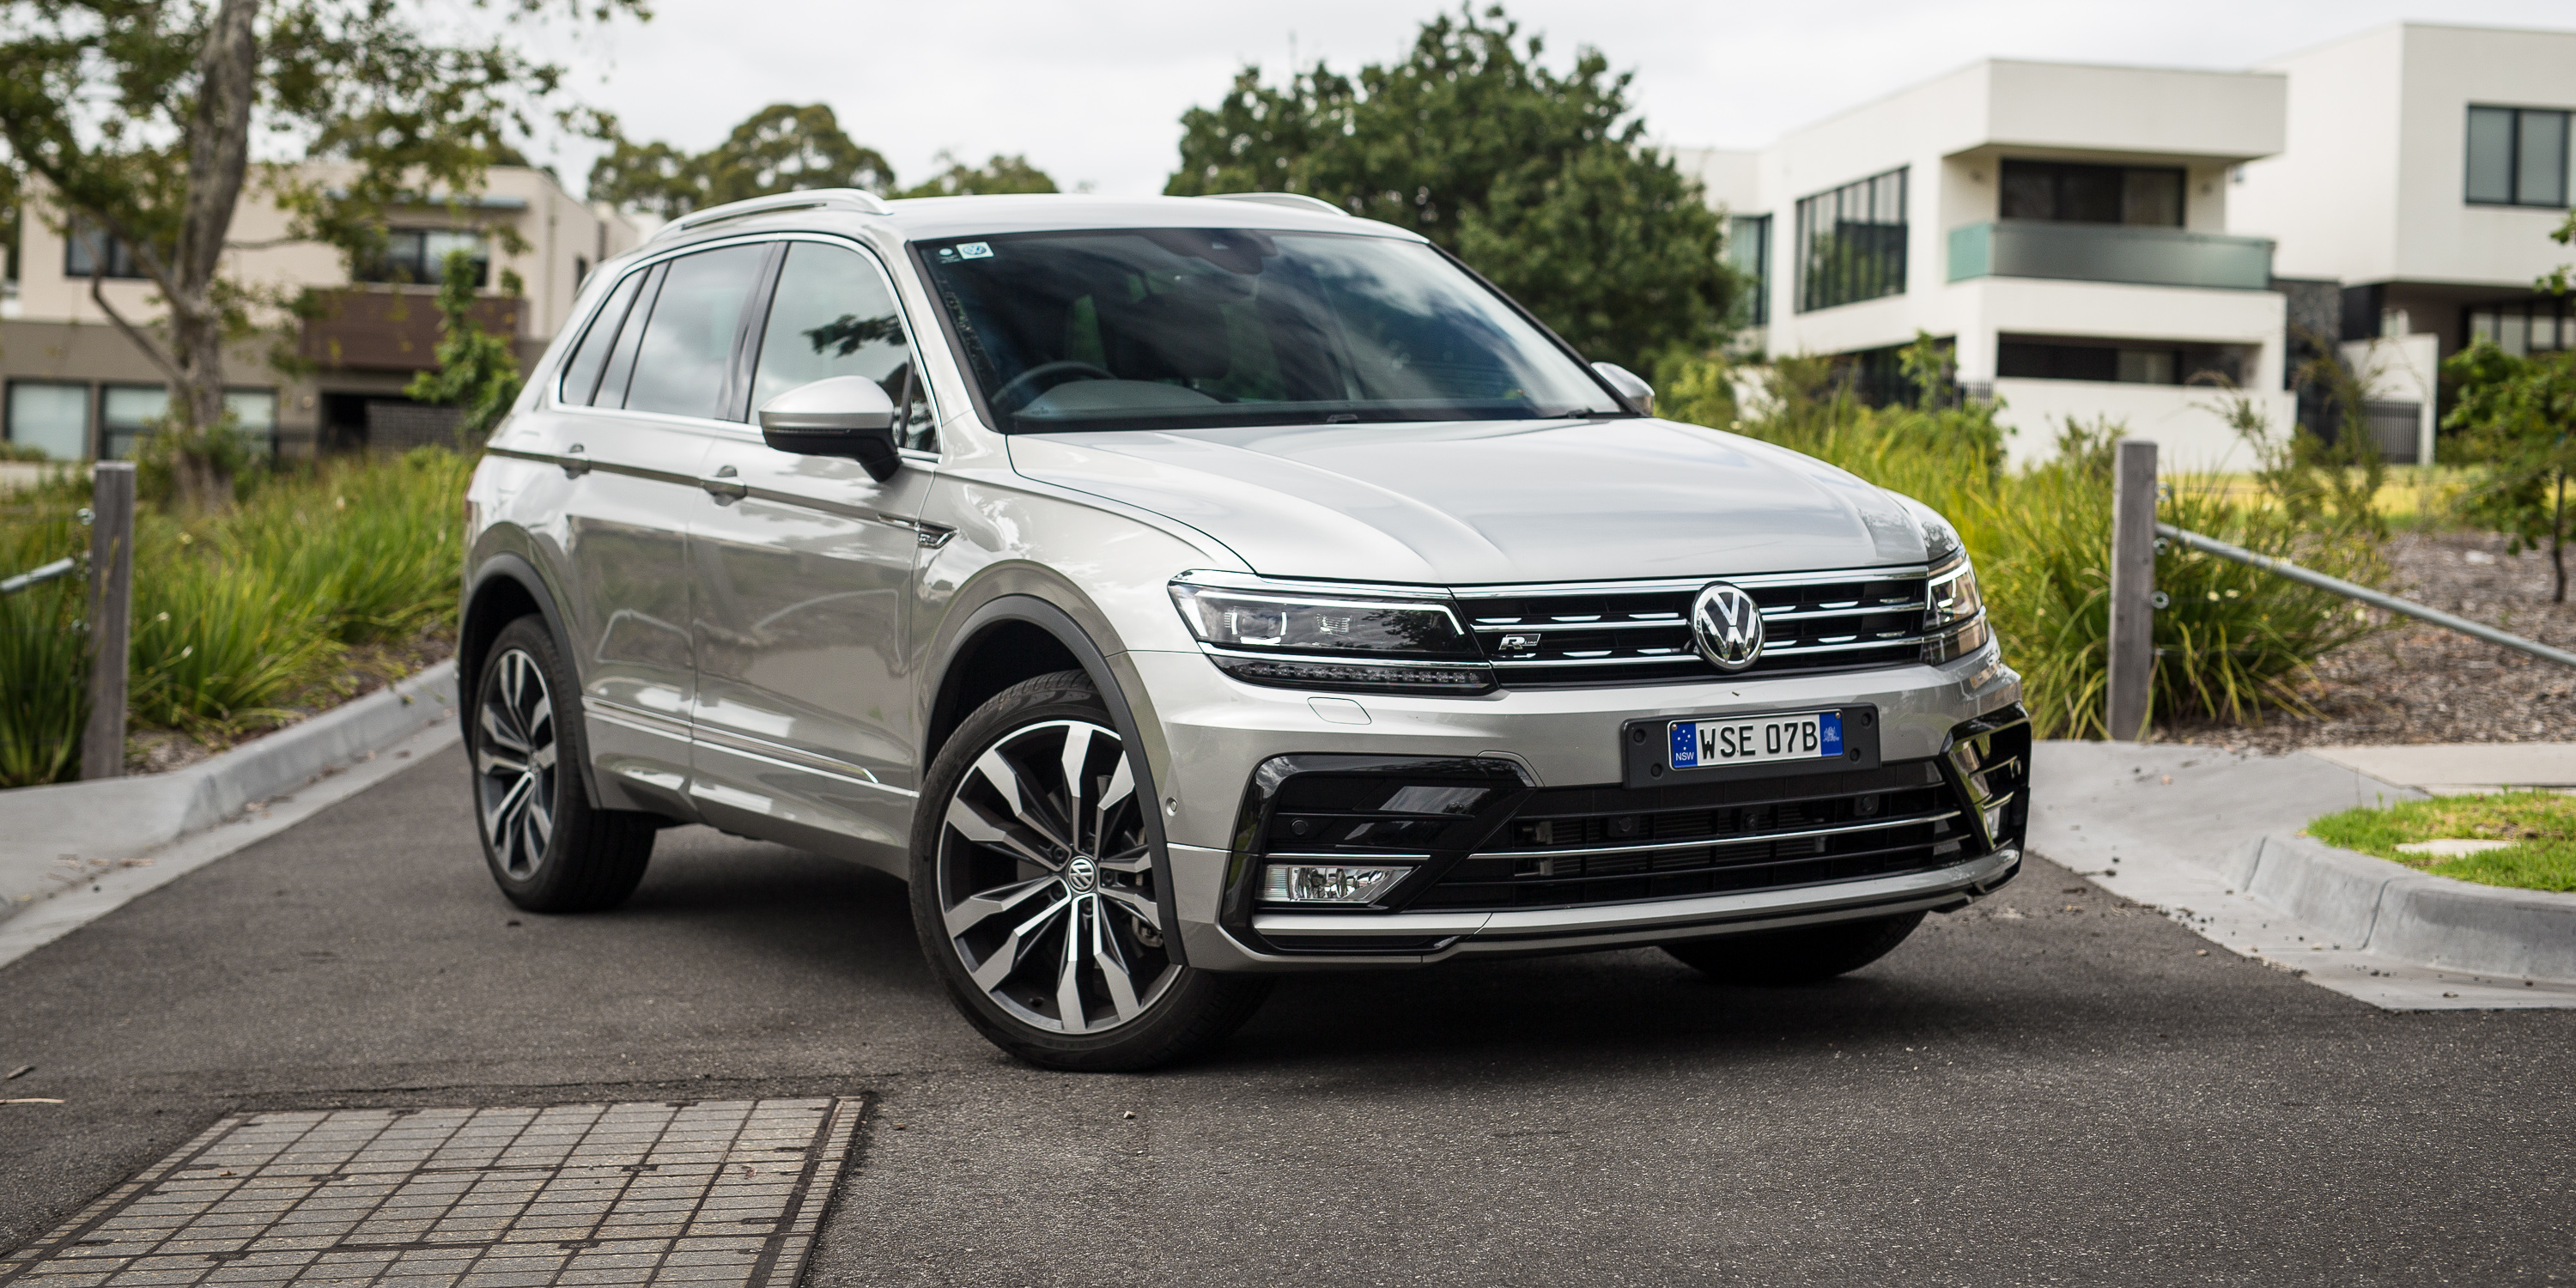 2017 Volkswagen Tiguan 162TSI R-Line review - photos ...